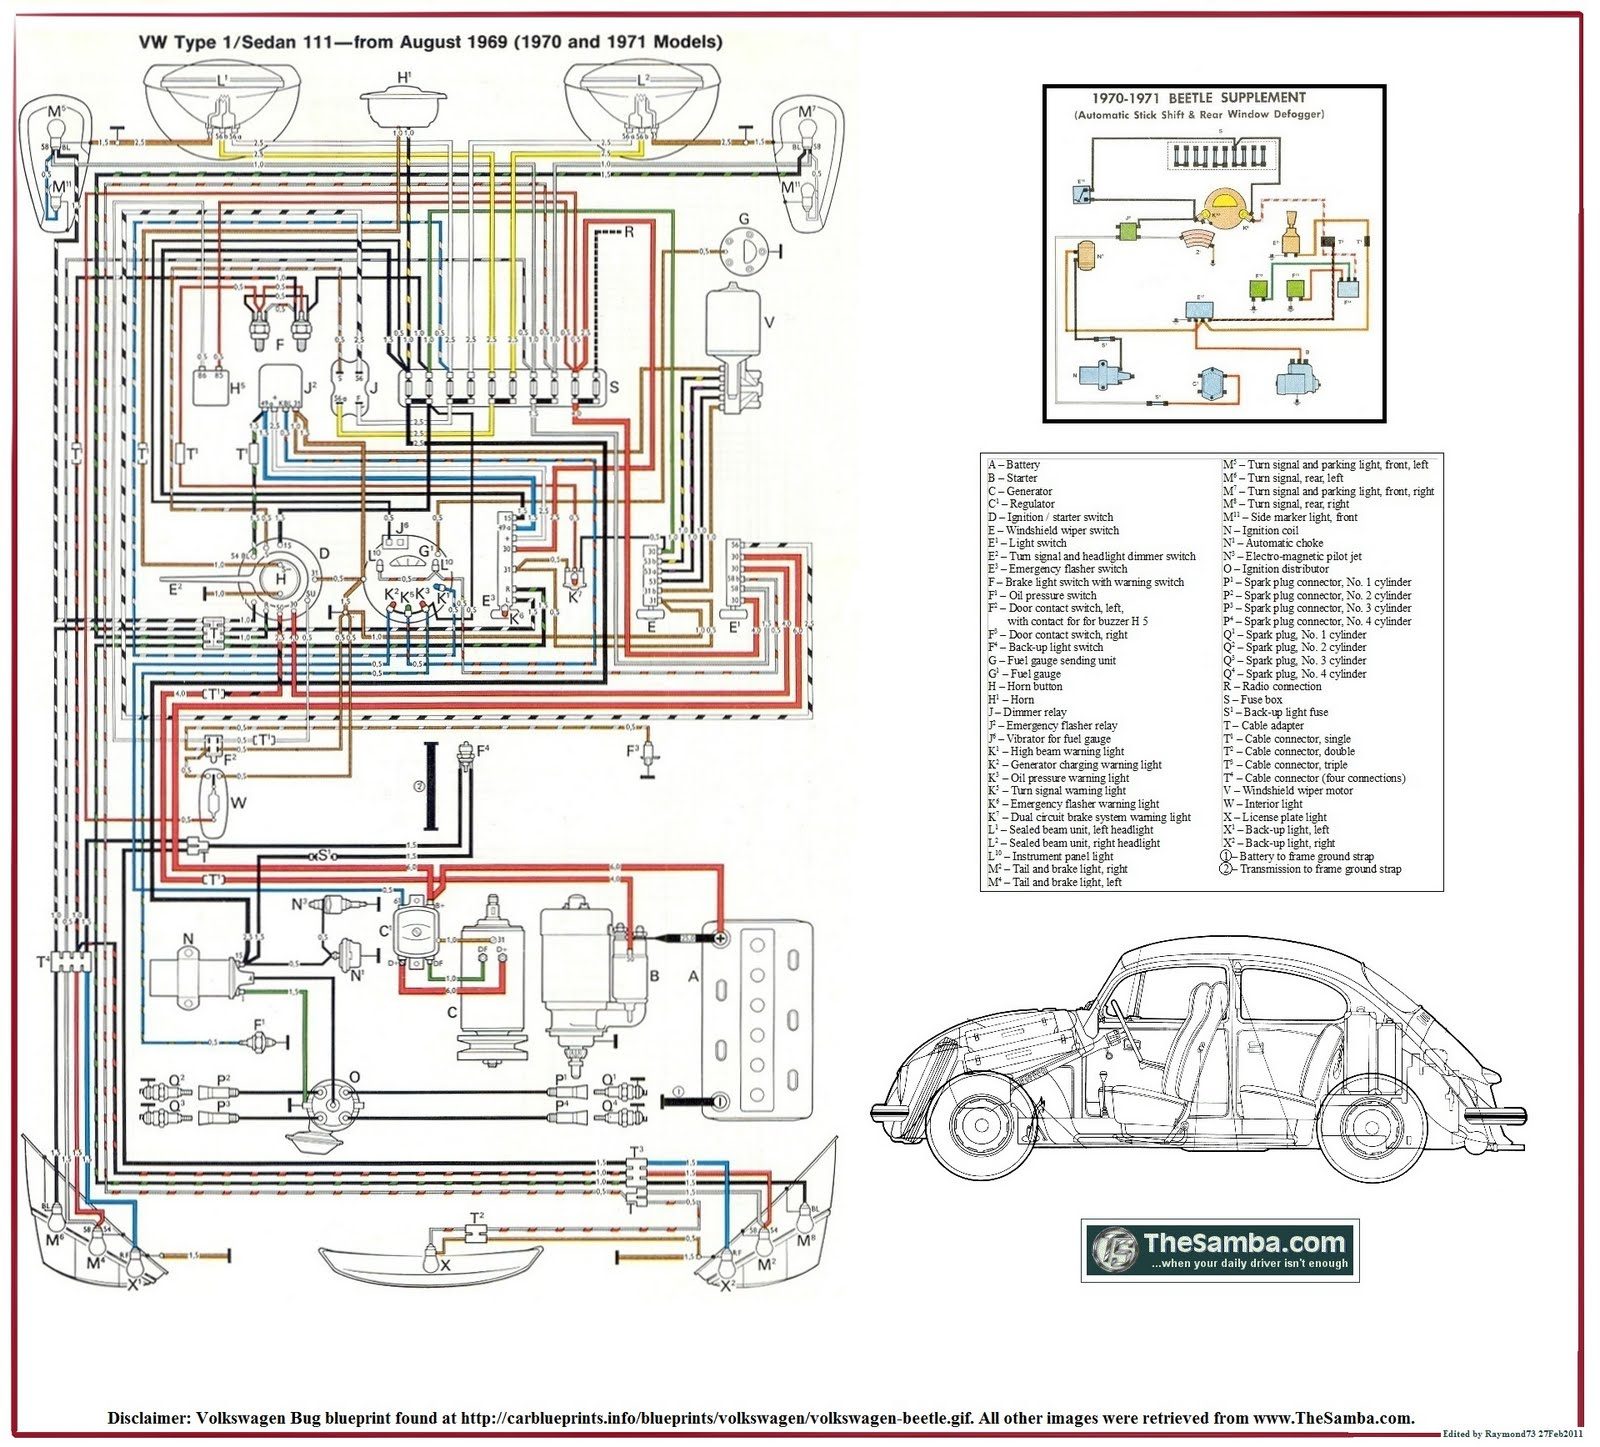 Steering Column 97387 further 1956 Chevrolet Headlight Switch Wiring Diagram additionally 1303dp History Of The Duramax Diesel Engine also Volkswagen Thing Wiring Diagram also 1966 Fuse Help 50657. on 55 chevy brake wiring